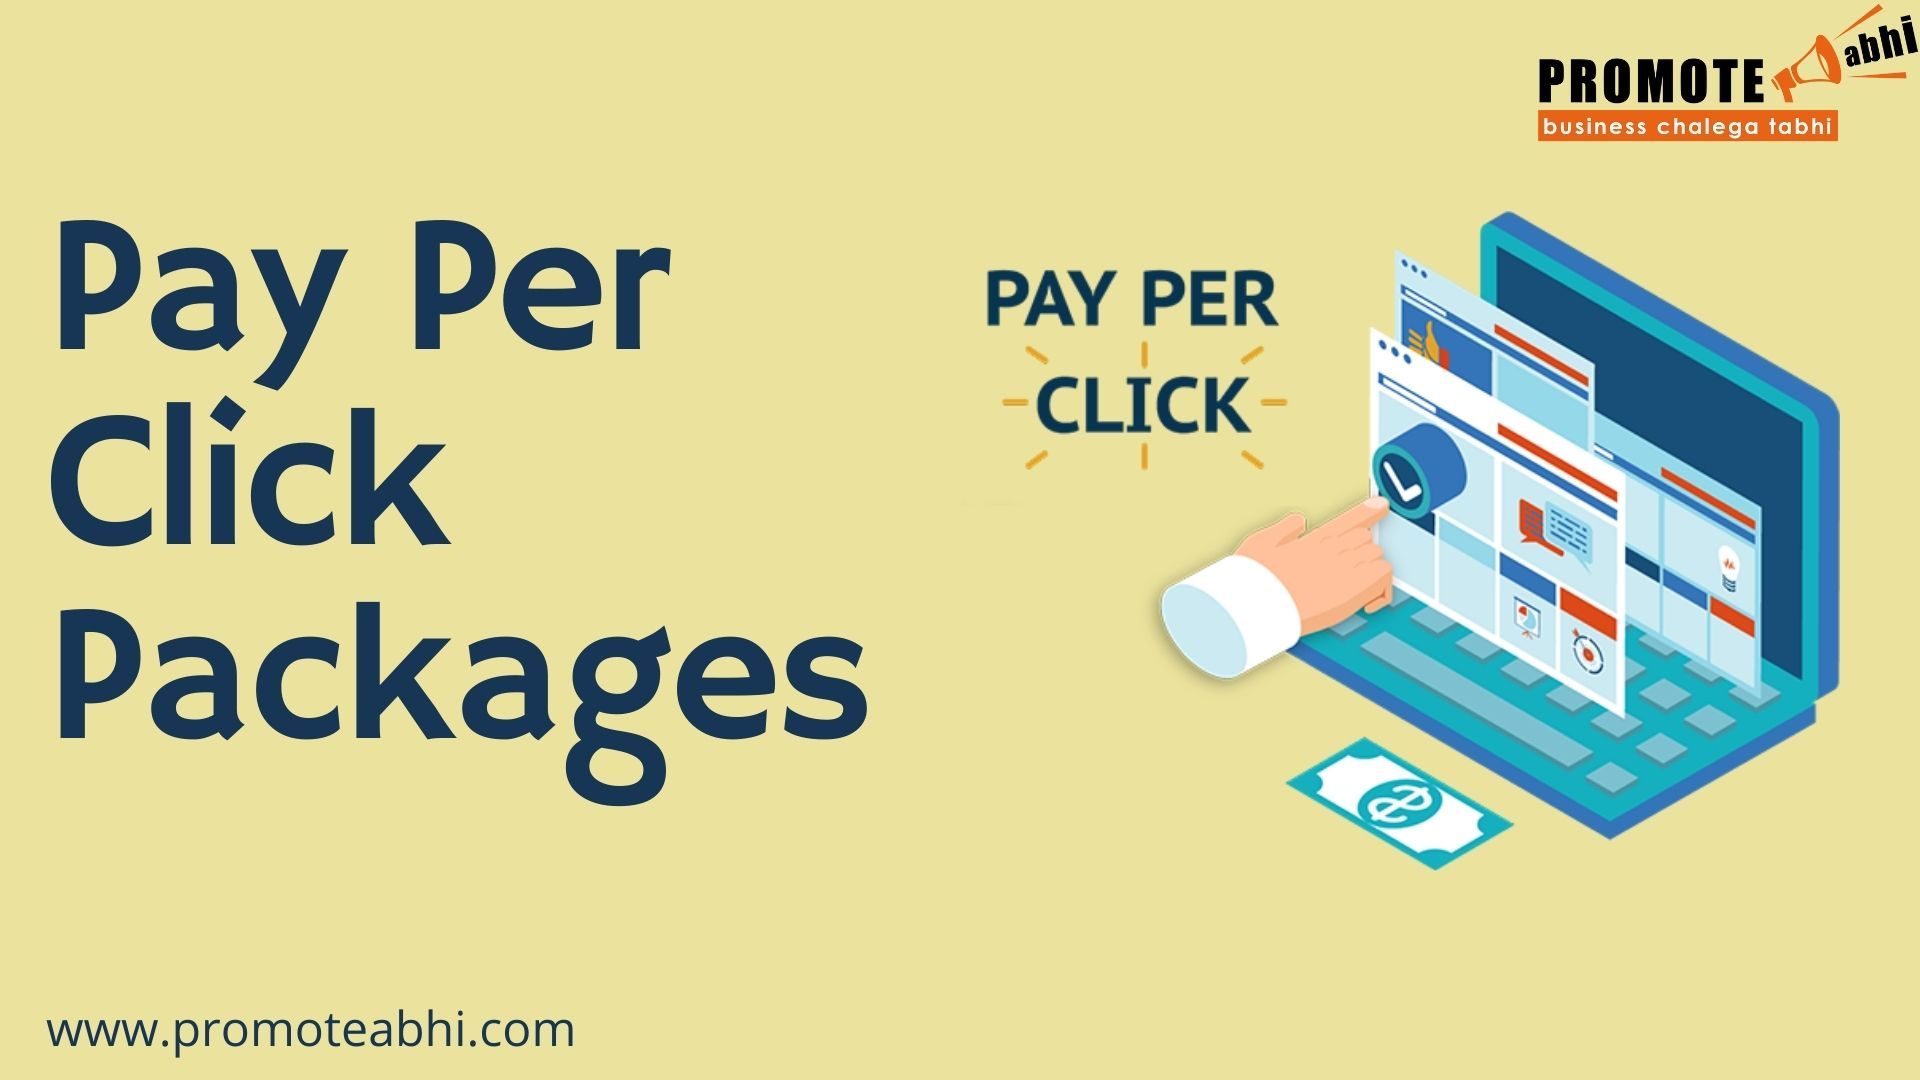 Pay Per Click Packages